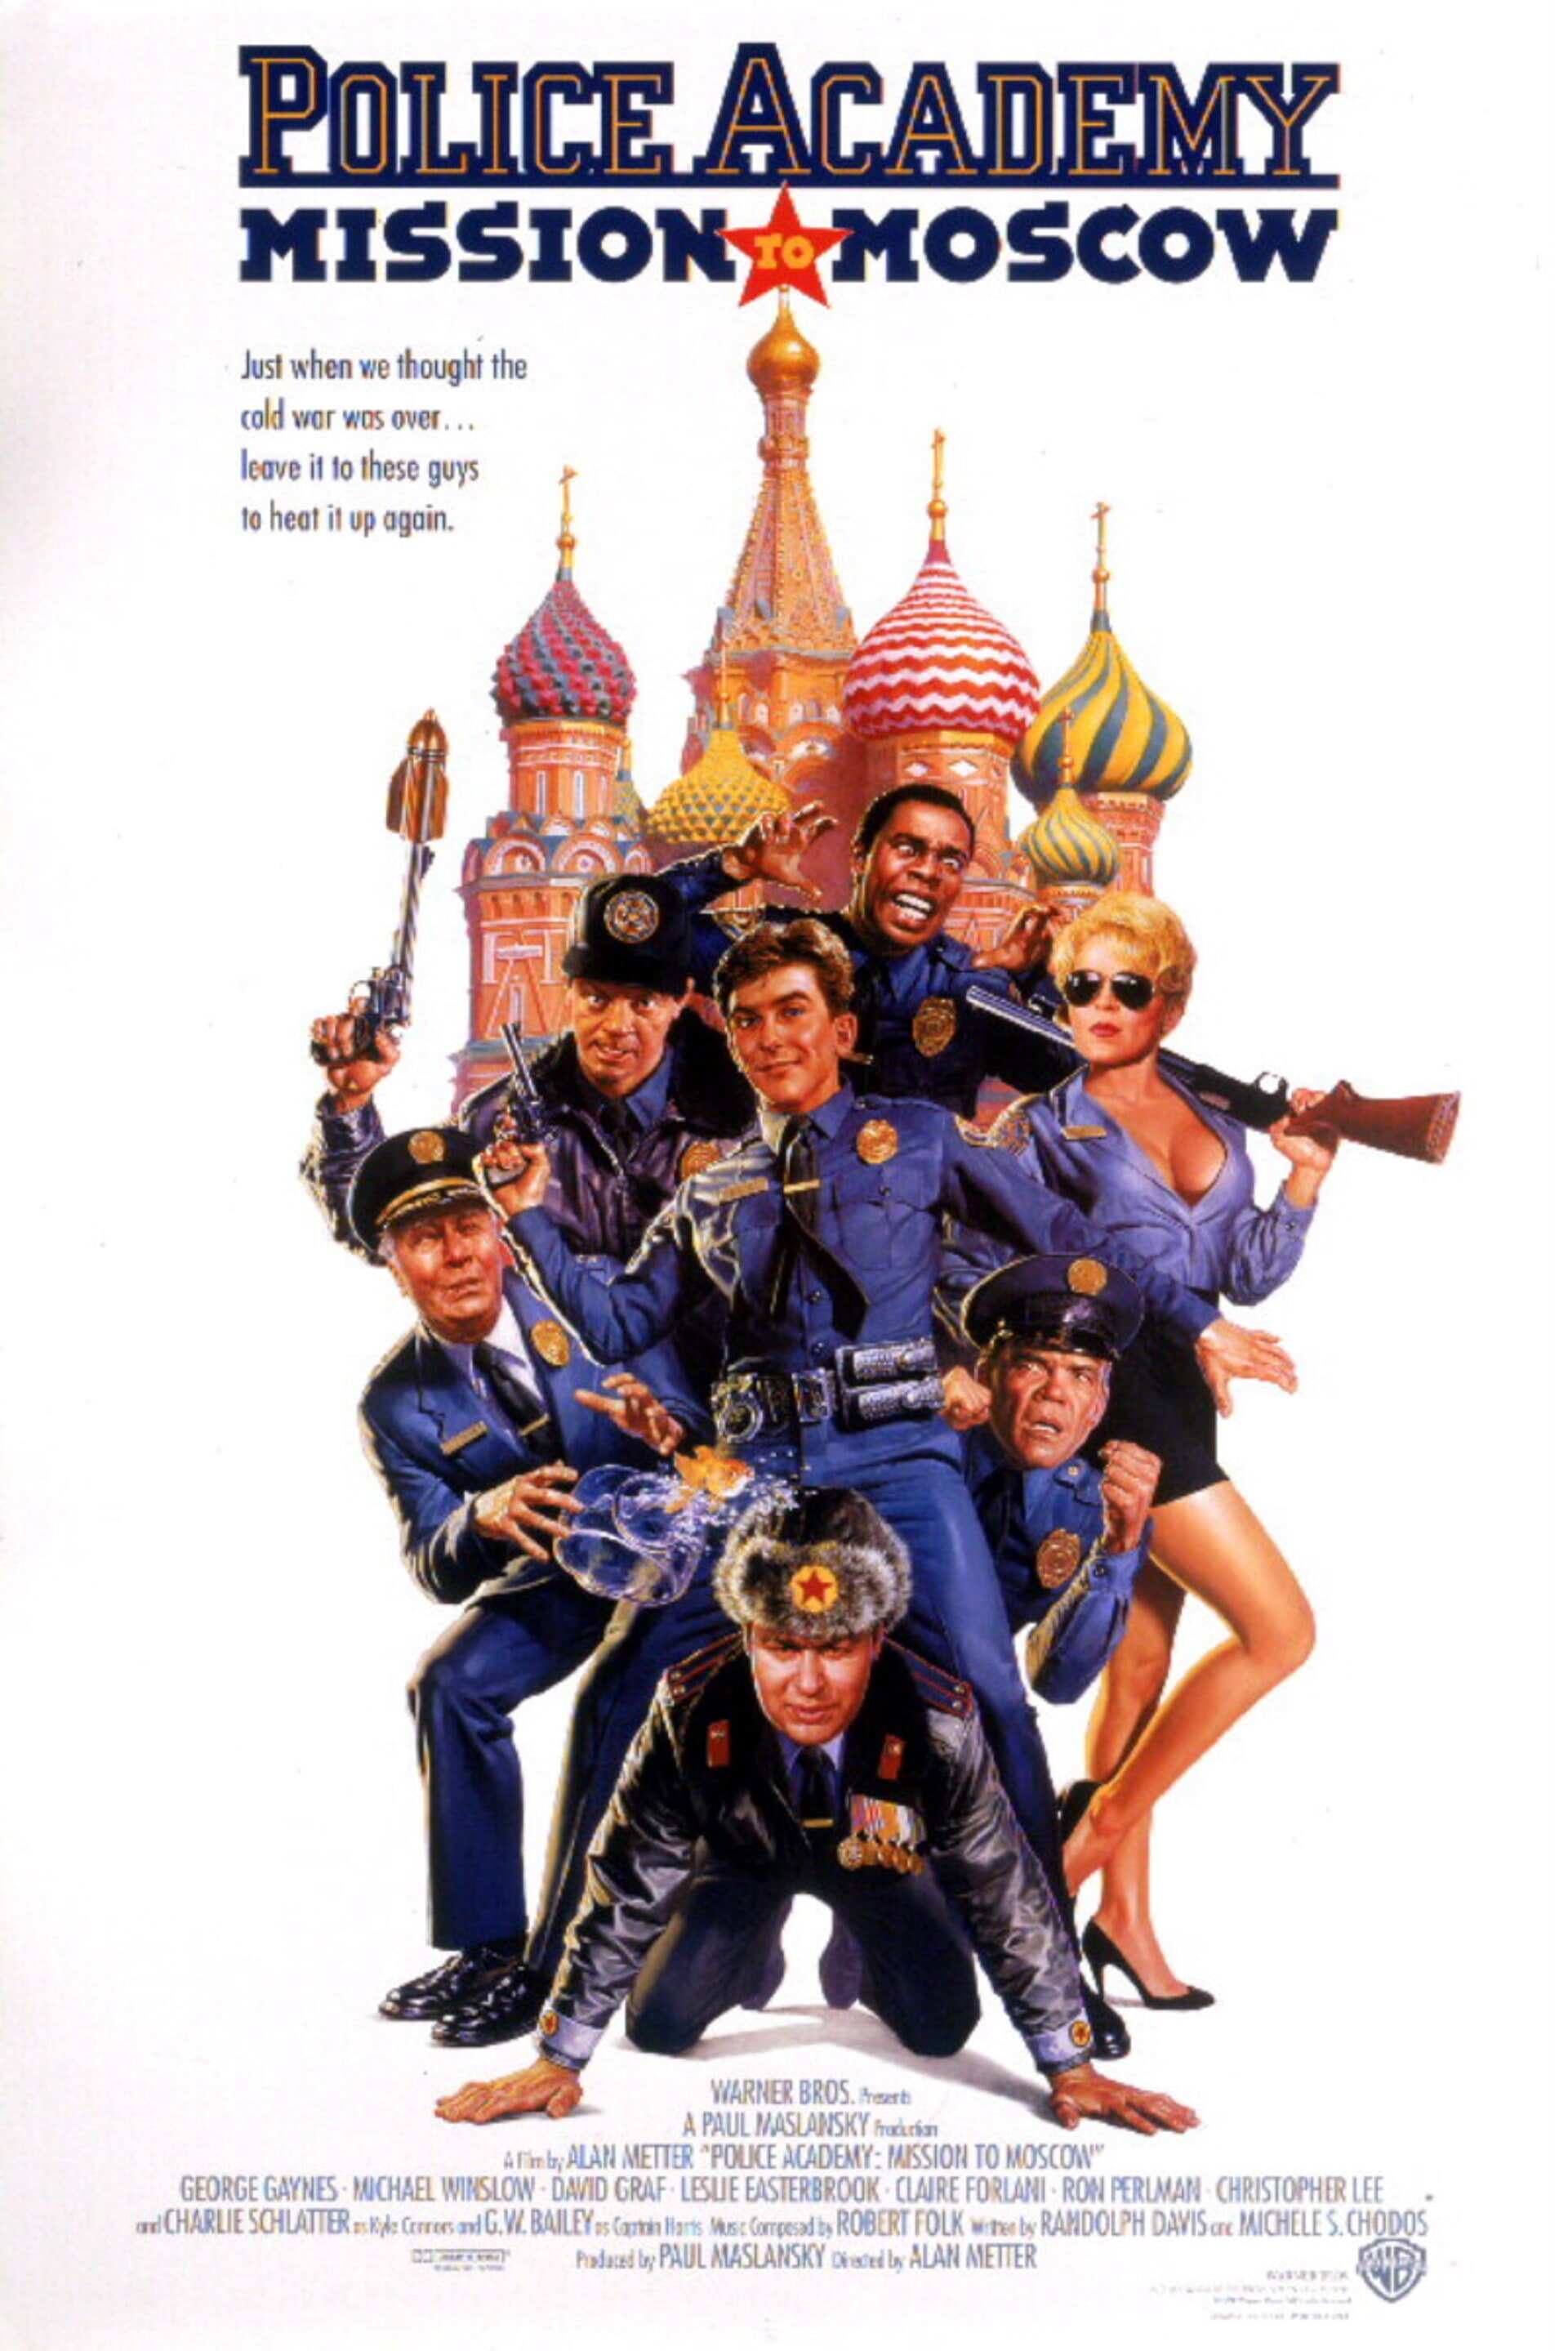 Police Academy: Mission to Moscow - Poster 1